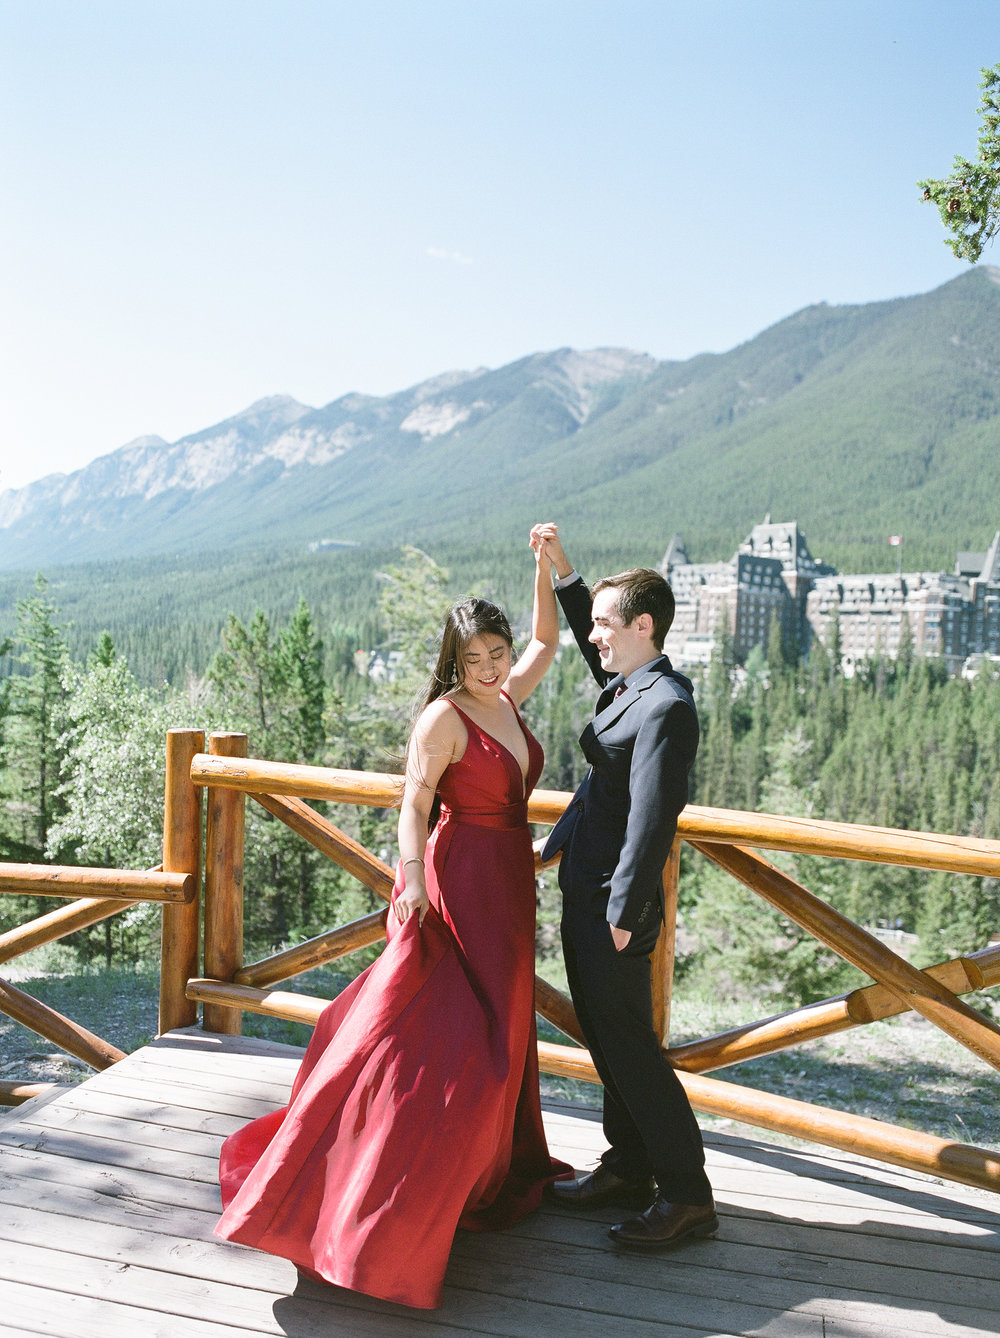 Bonphotage Banff Fine Art Wedding Photography